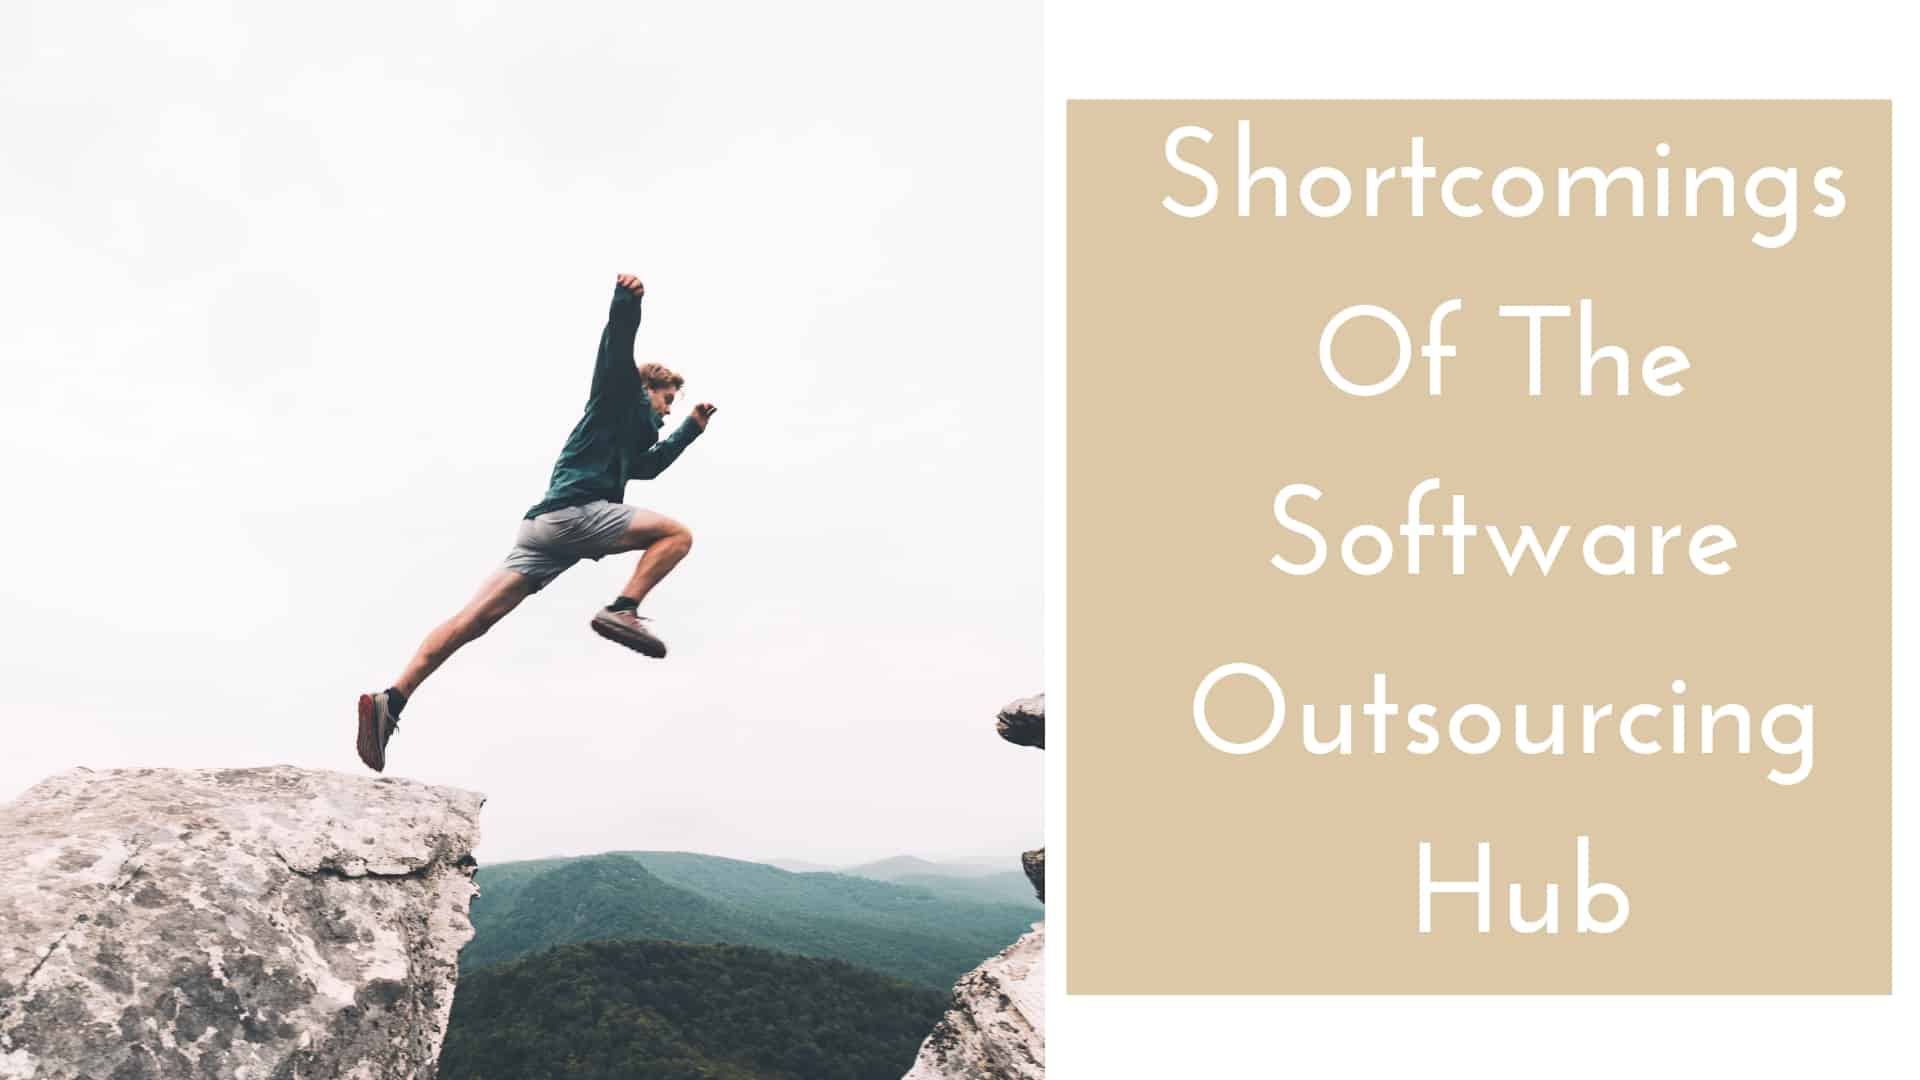 Shortcomings Of The Software Outsourcing Hub